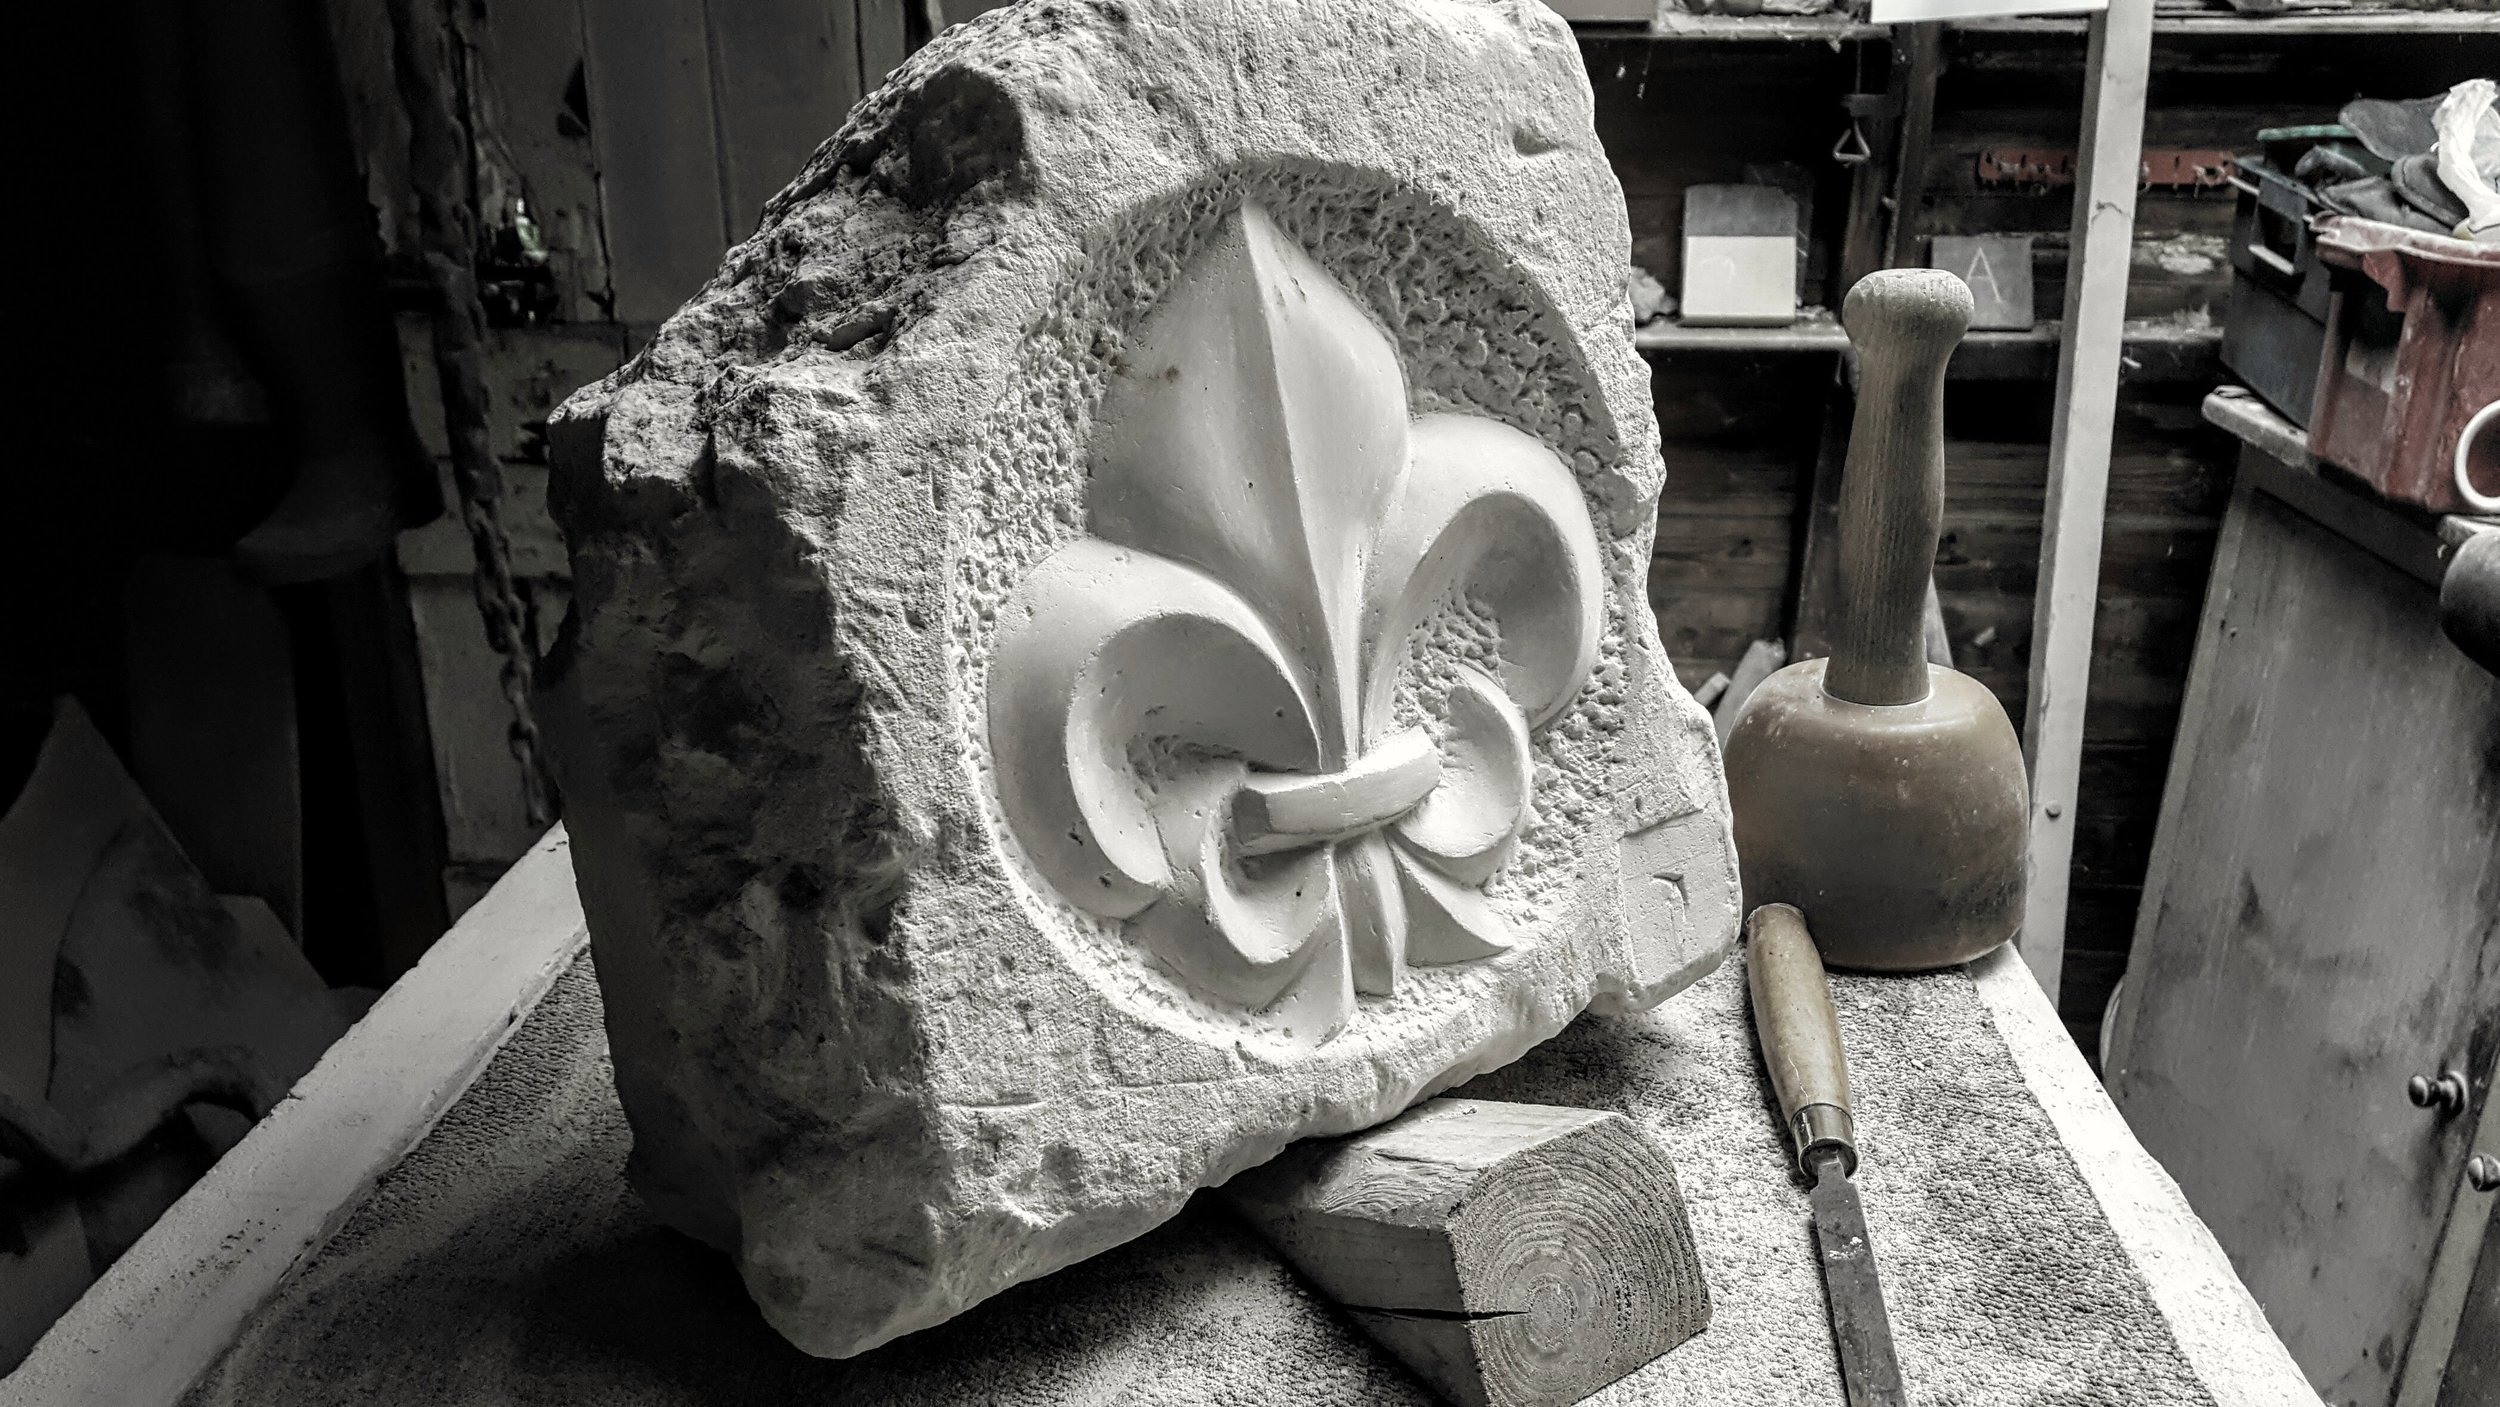 To follow the progress of my latest work,  click here  to visit the Ticket Office Studio & Gallery Facebook page.